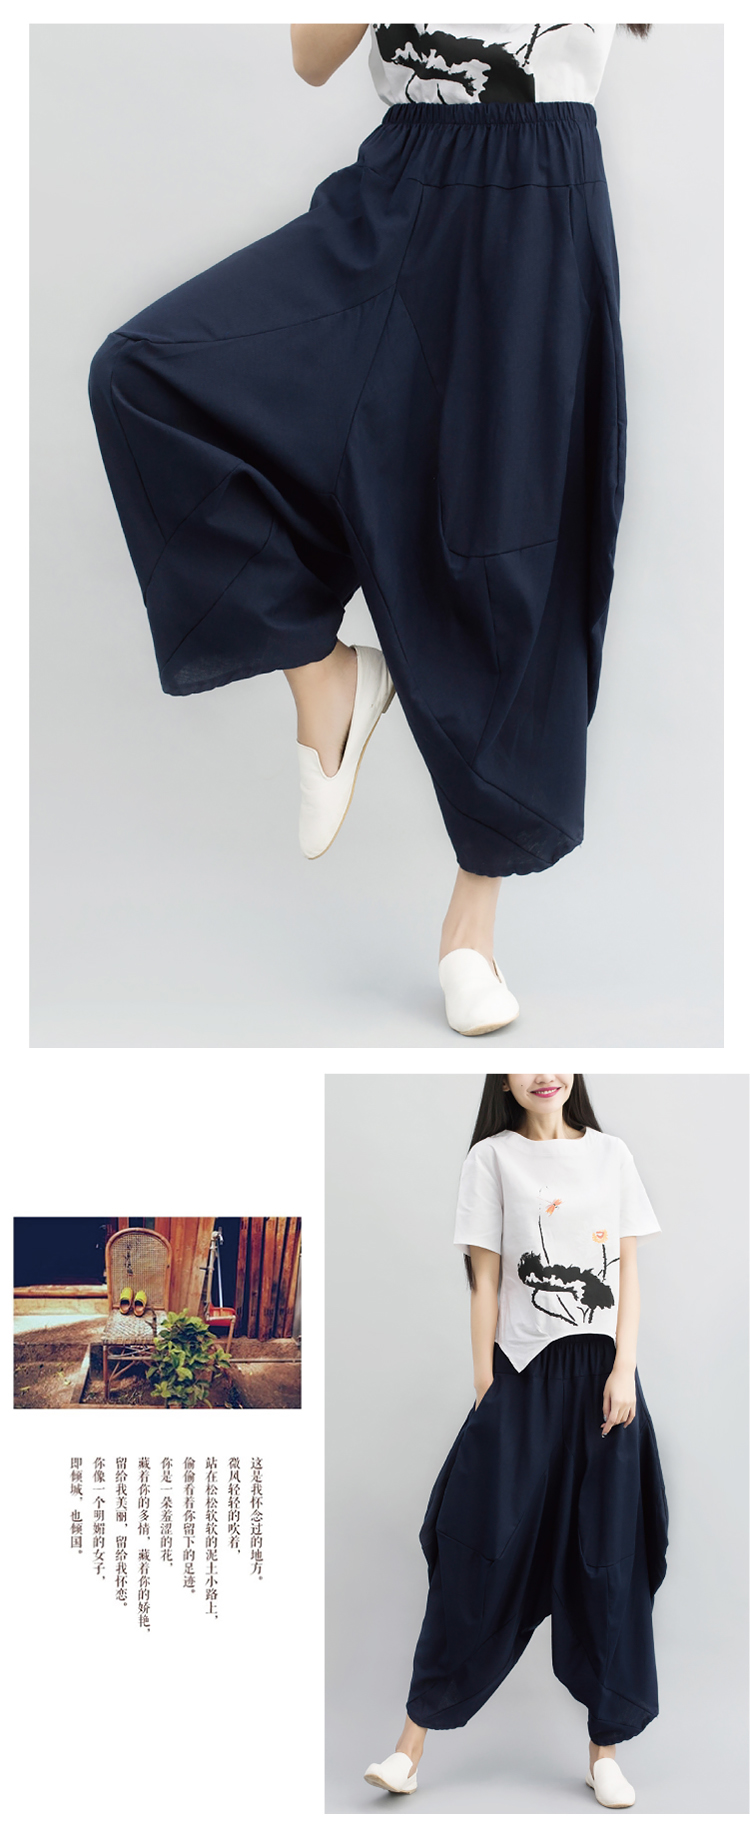 Loose Women Harem Pants Summer Casual Solid Color Elastic Waist Wild Female Ankle-Length Pants Fashion Special Tide 7